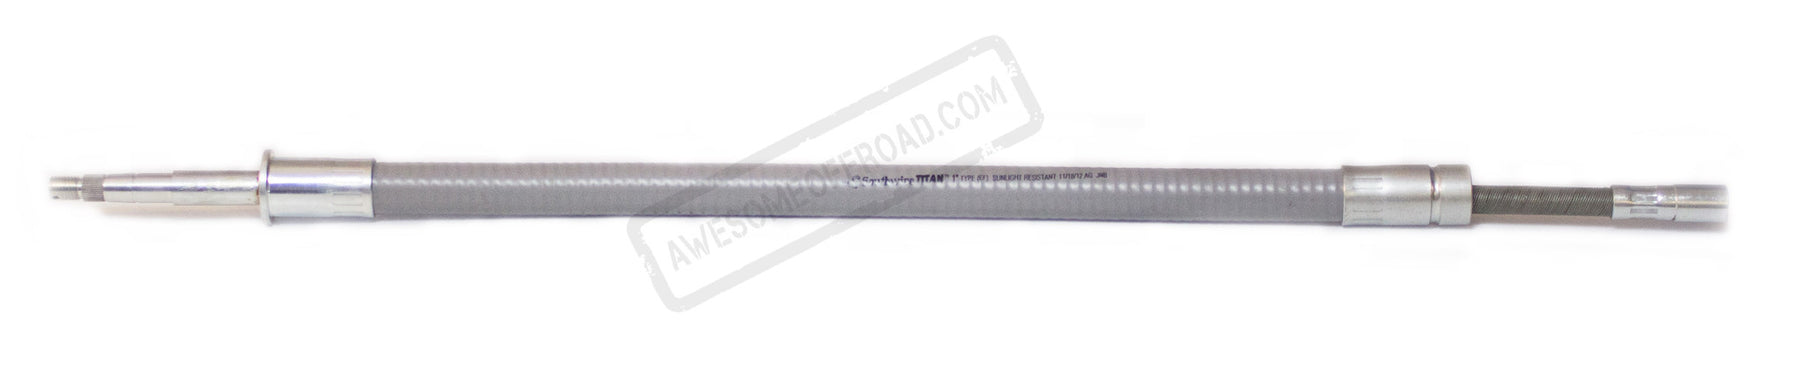 Arctic Cat Wildcat Steering Cable 0405-403